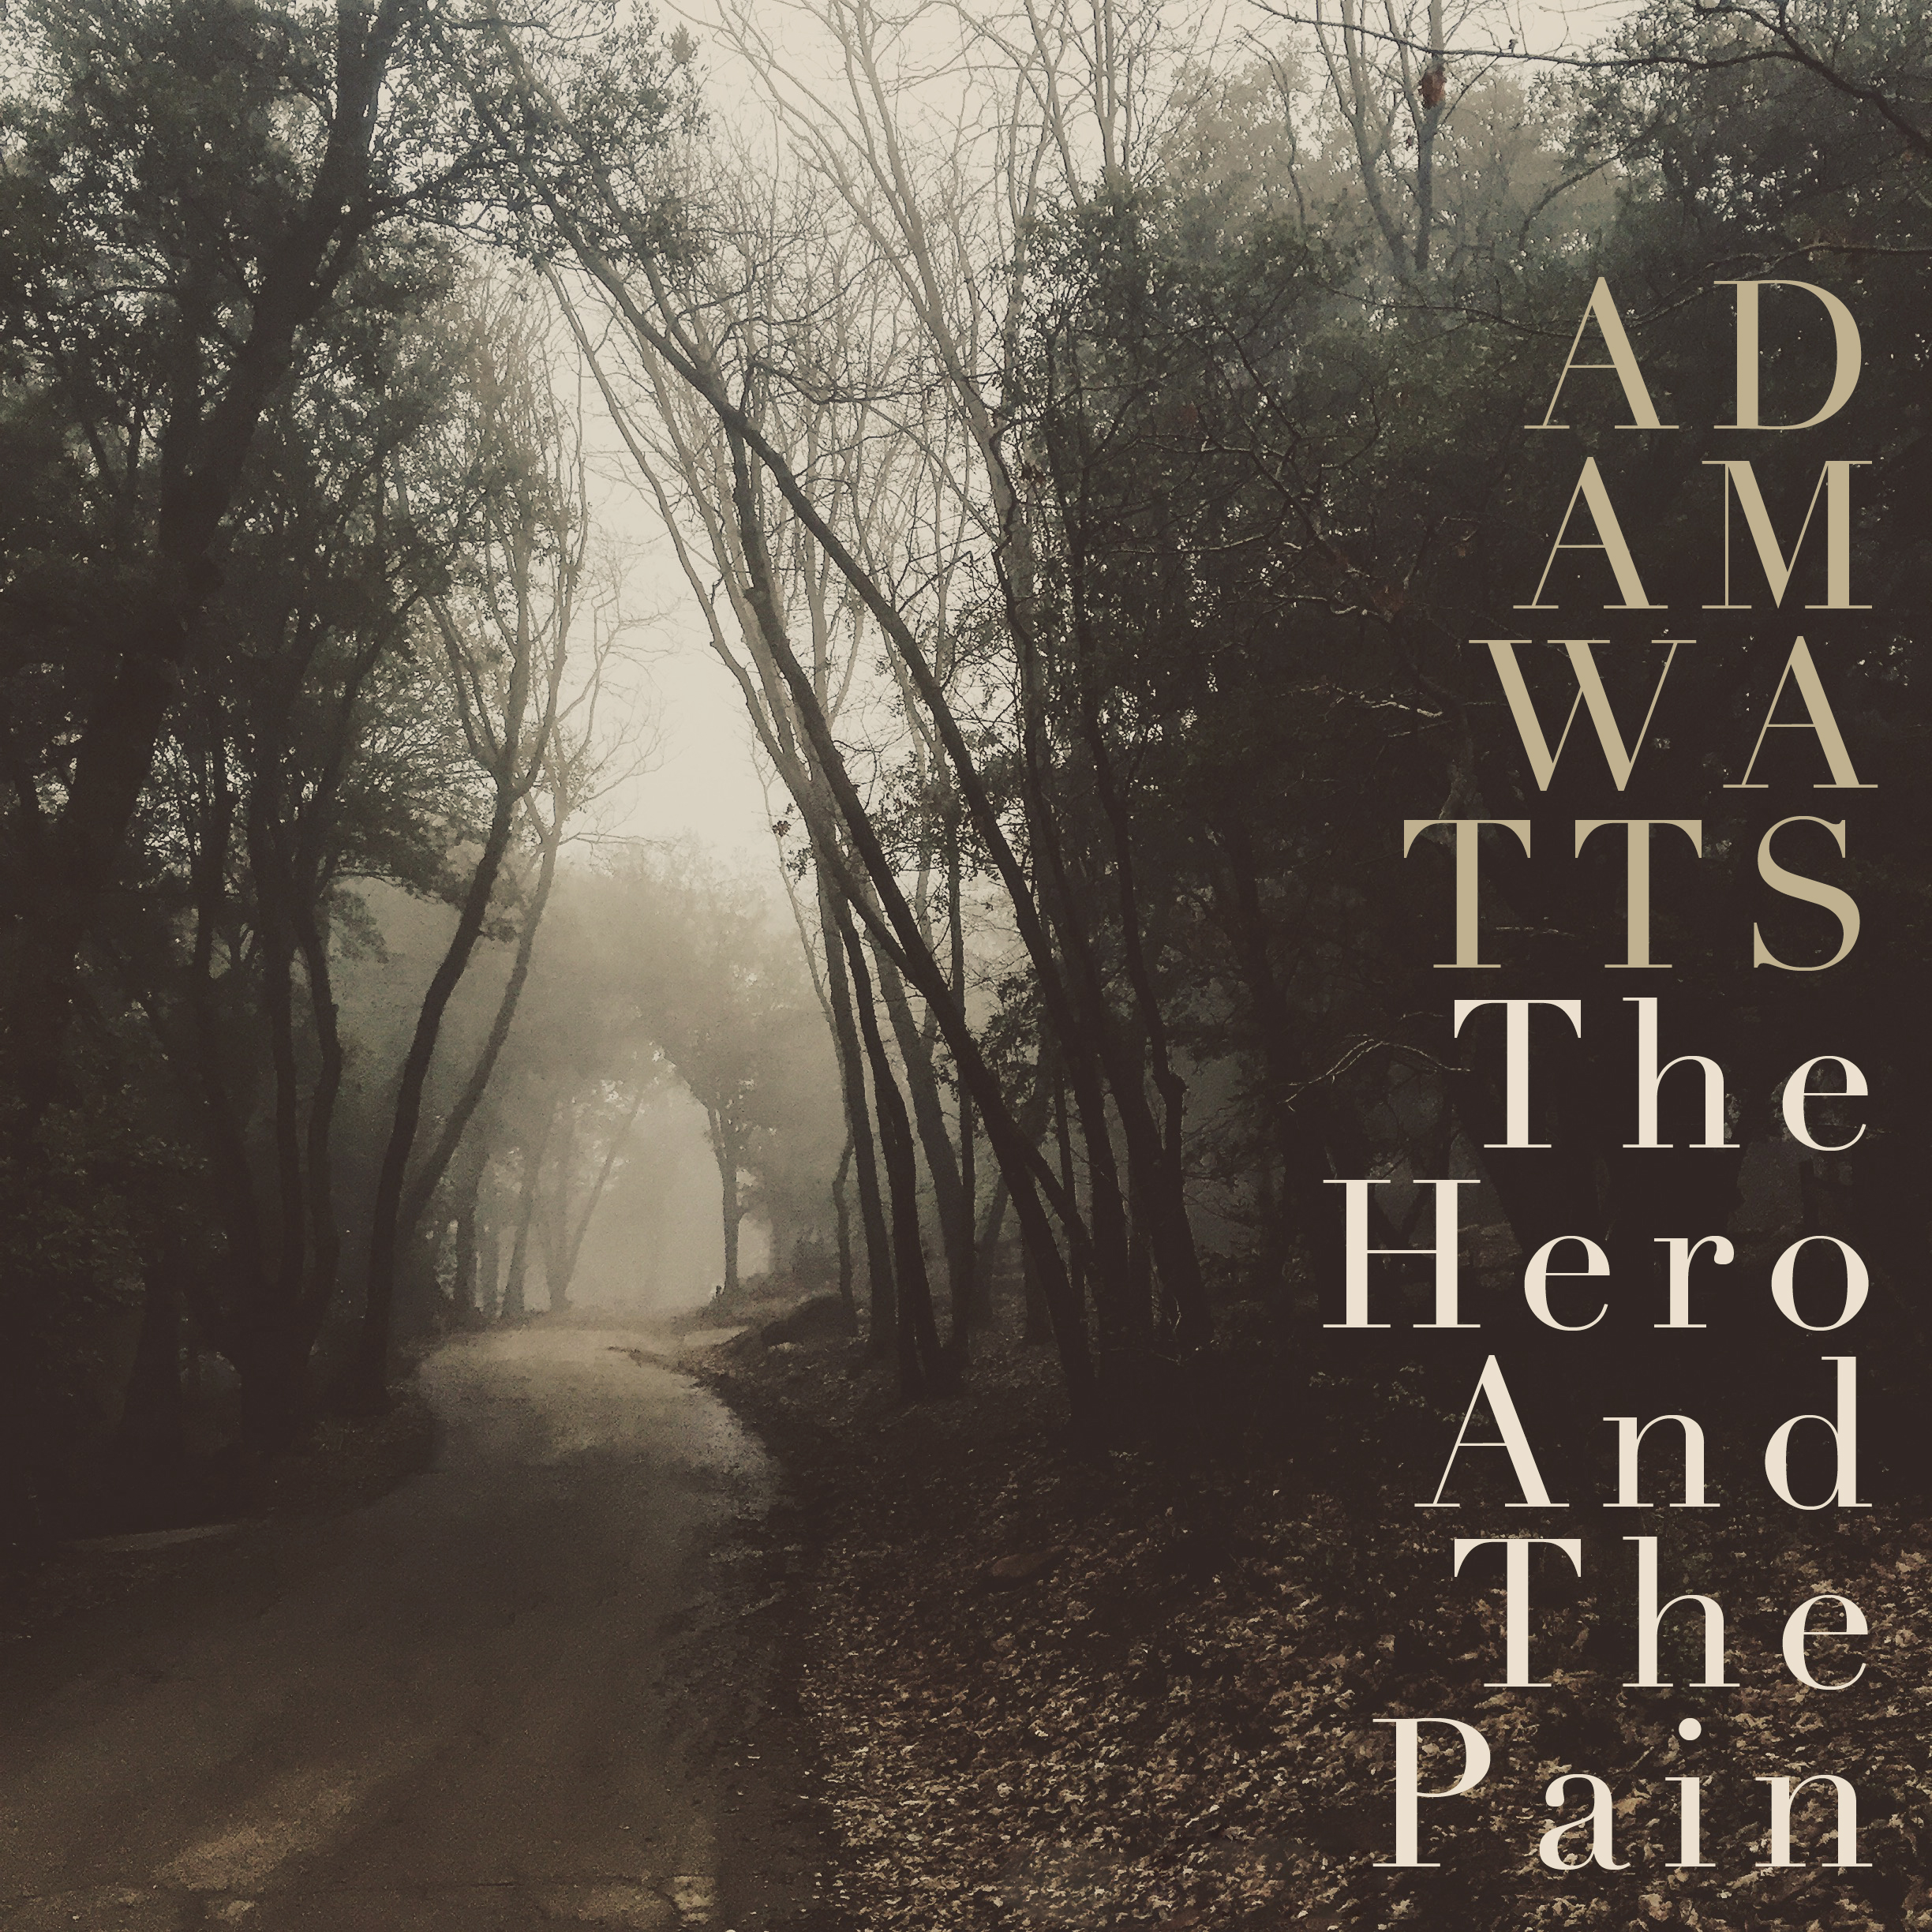 The Hero And The Pain-Adam Watts (Cover).jpg